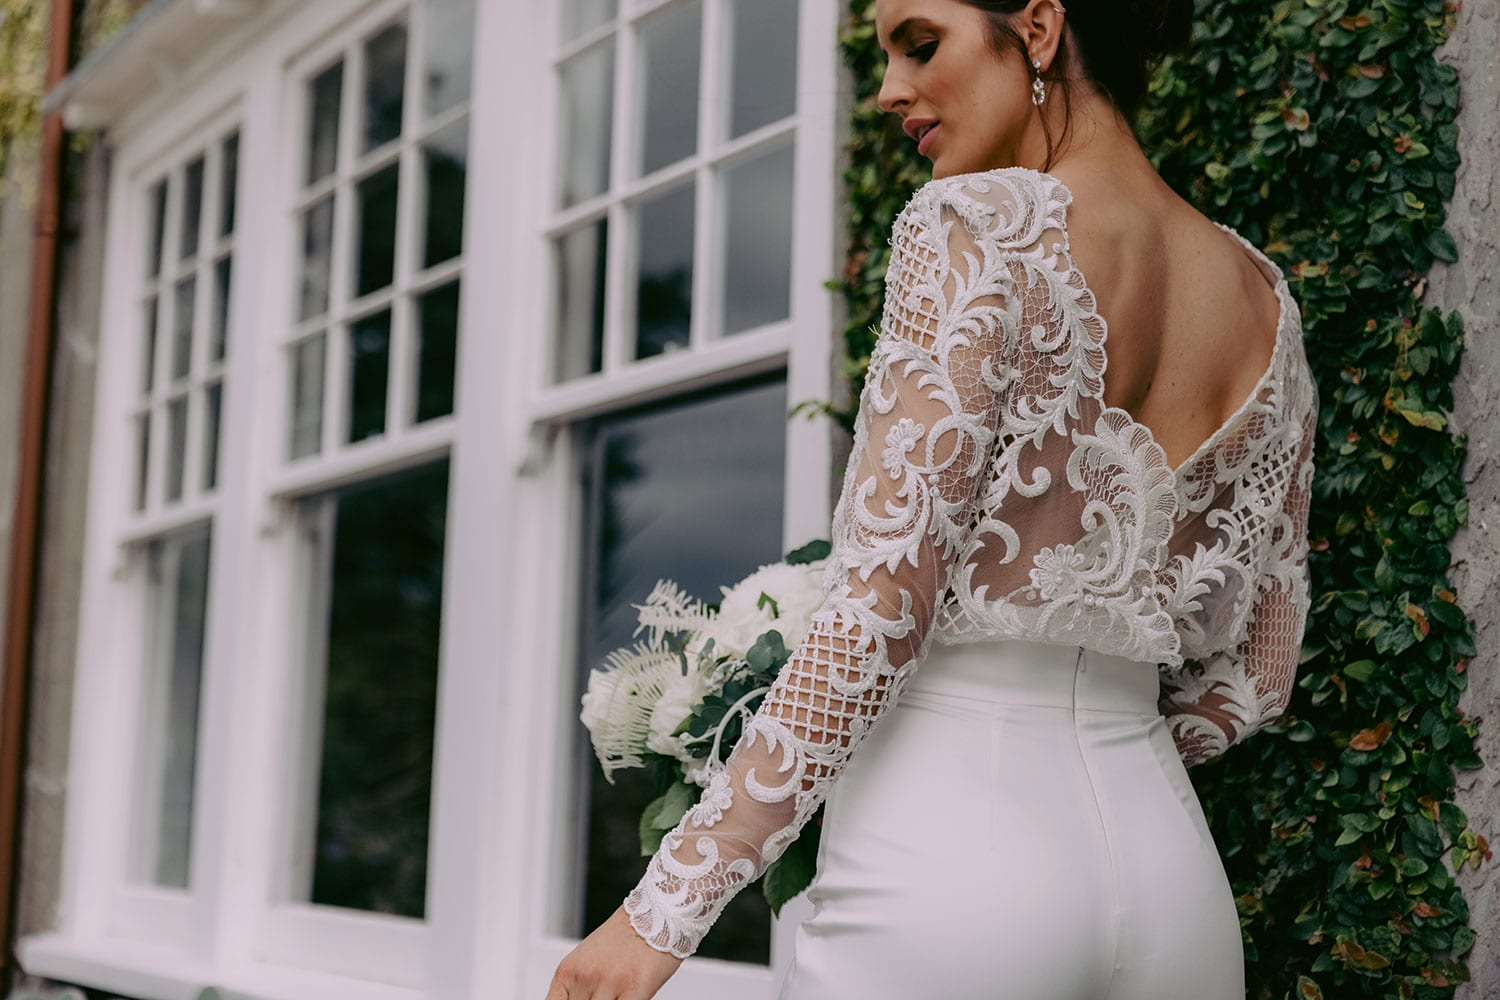 Aurora Wedding Trousers and Blouse from Vinka Design - Elegantly tailored trouser combined with a beautiful lace blouse for the Modern Bride. The blouse features a high neck and low back, with in-built camisole, fitted sleeves, & pearl buttons. Model wearing Trousers and Blouse showing low back detail of blouse outside Heritage building in Clevedon Gardens, Auckland.